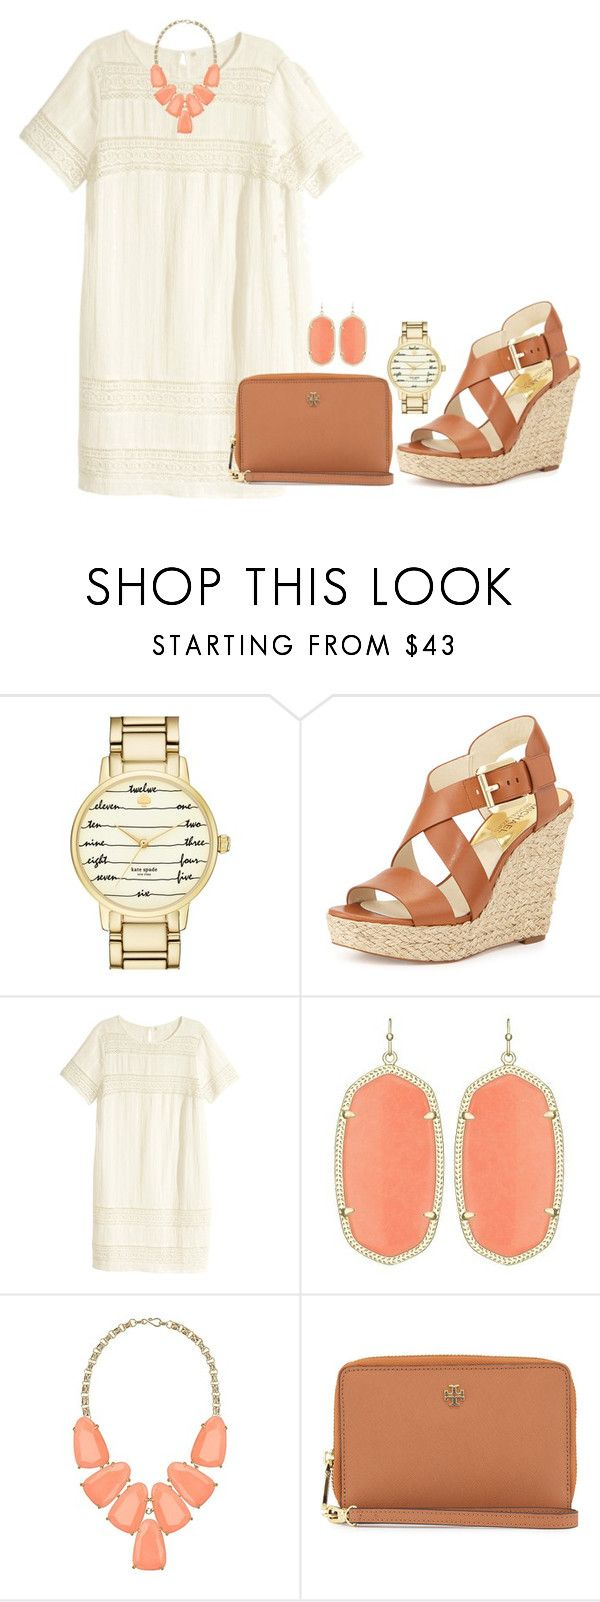 """""""1•20•2016"""" by ashleypinkerton ❤ liked on Polyvore featuring Kate Spade, MICHAEL Michael Kors, H&M, Kendra Scott, Tory Burch, women's clothing, women's fashion, women, female and woman"""